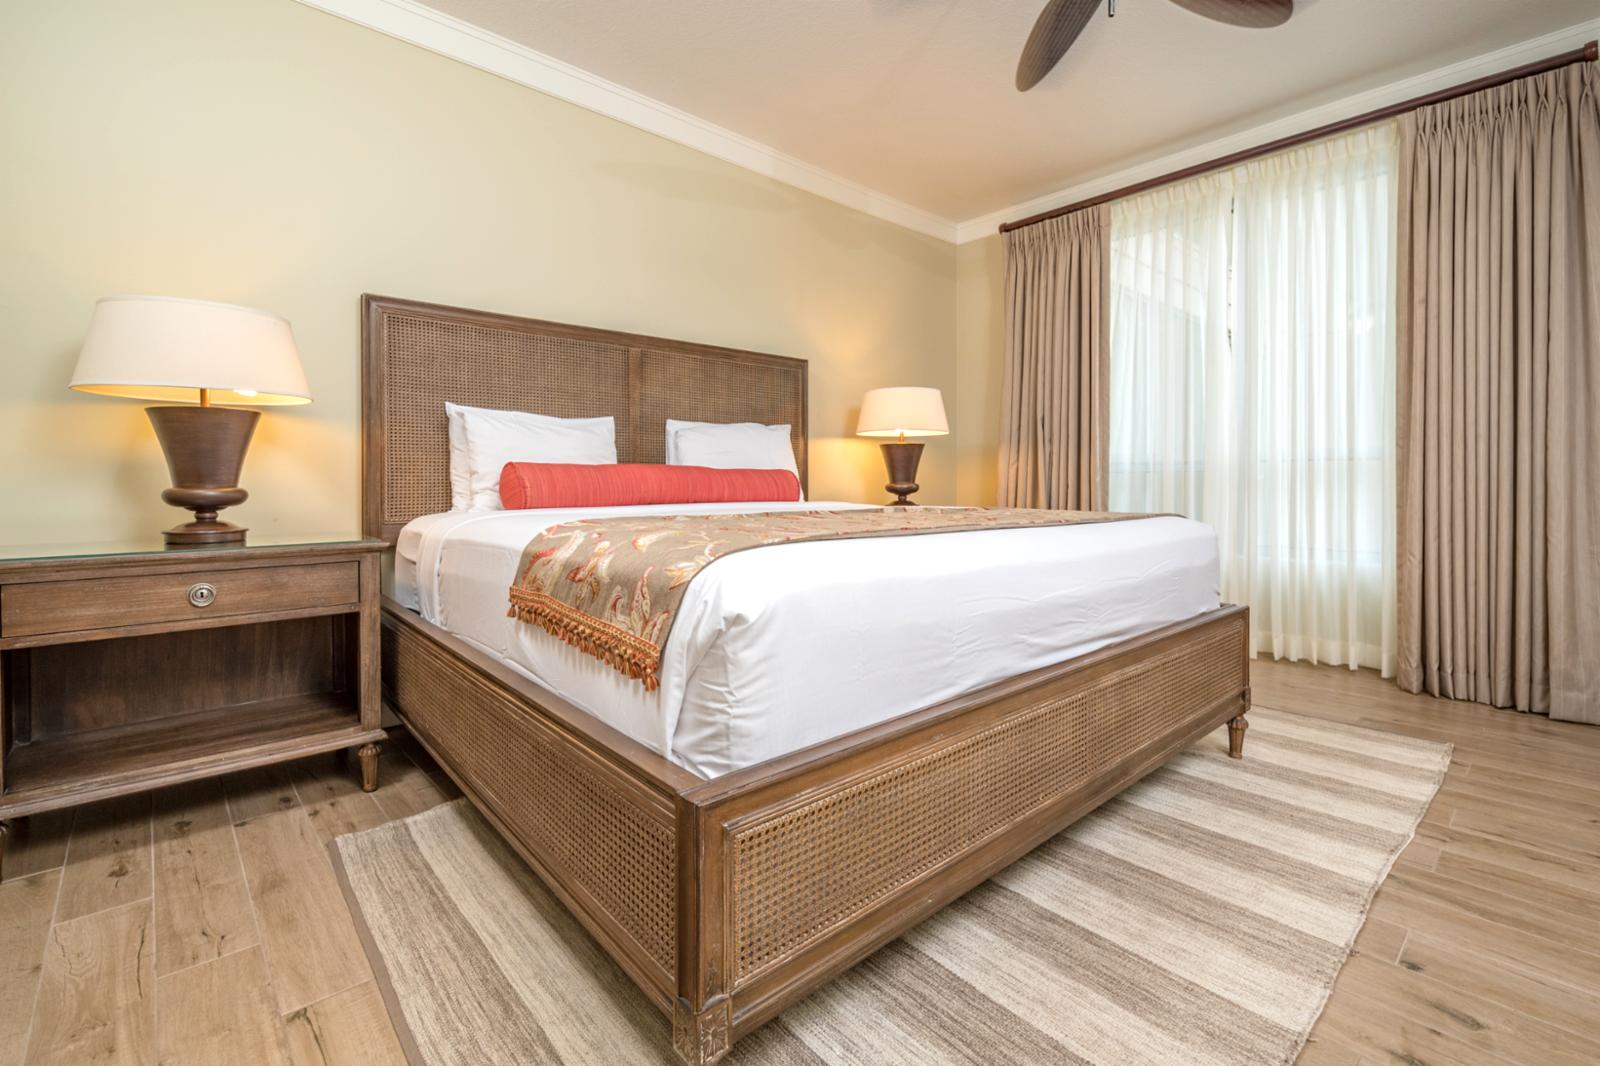 Large guest suite with upgraded ceiling fan and chic interiors